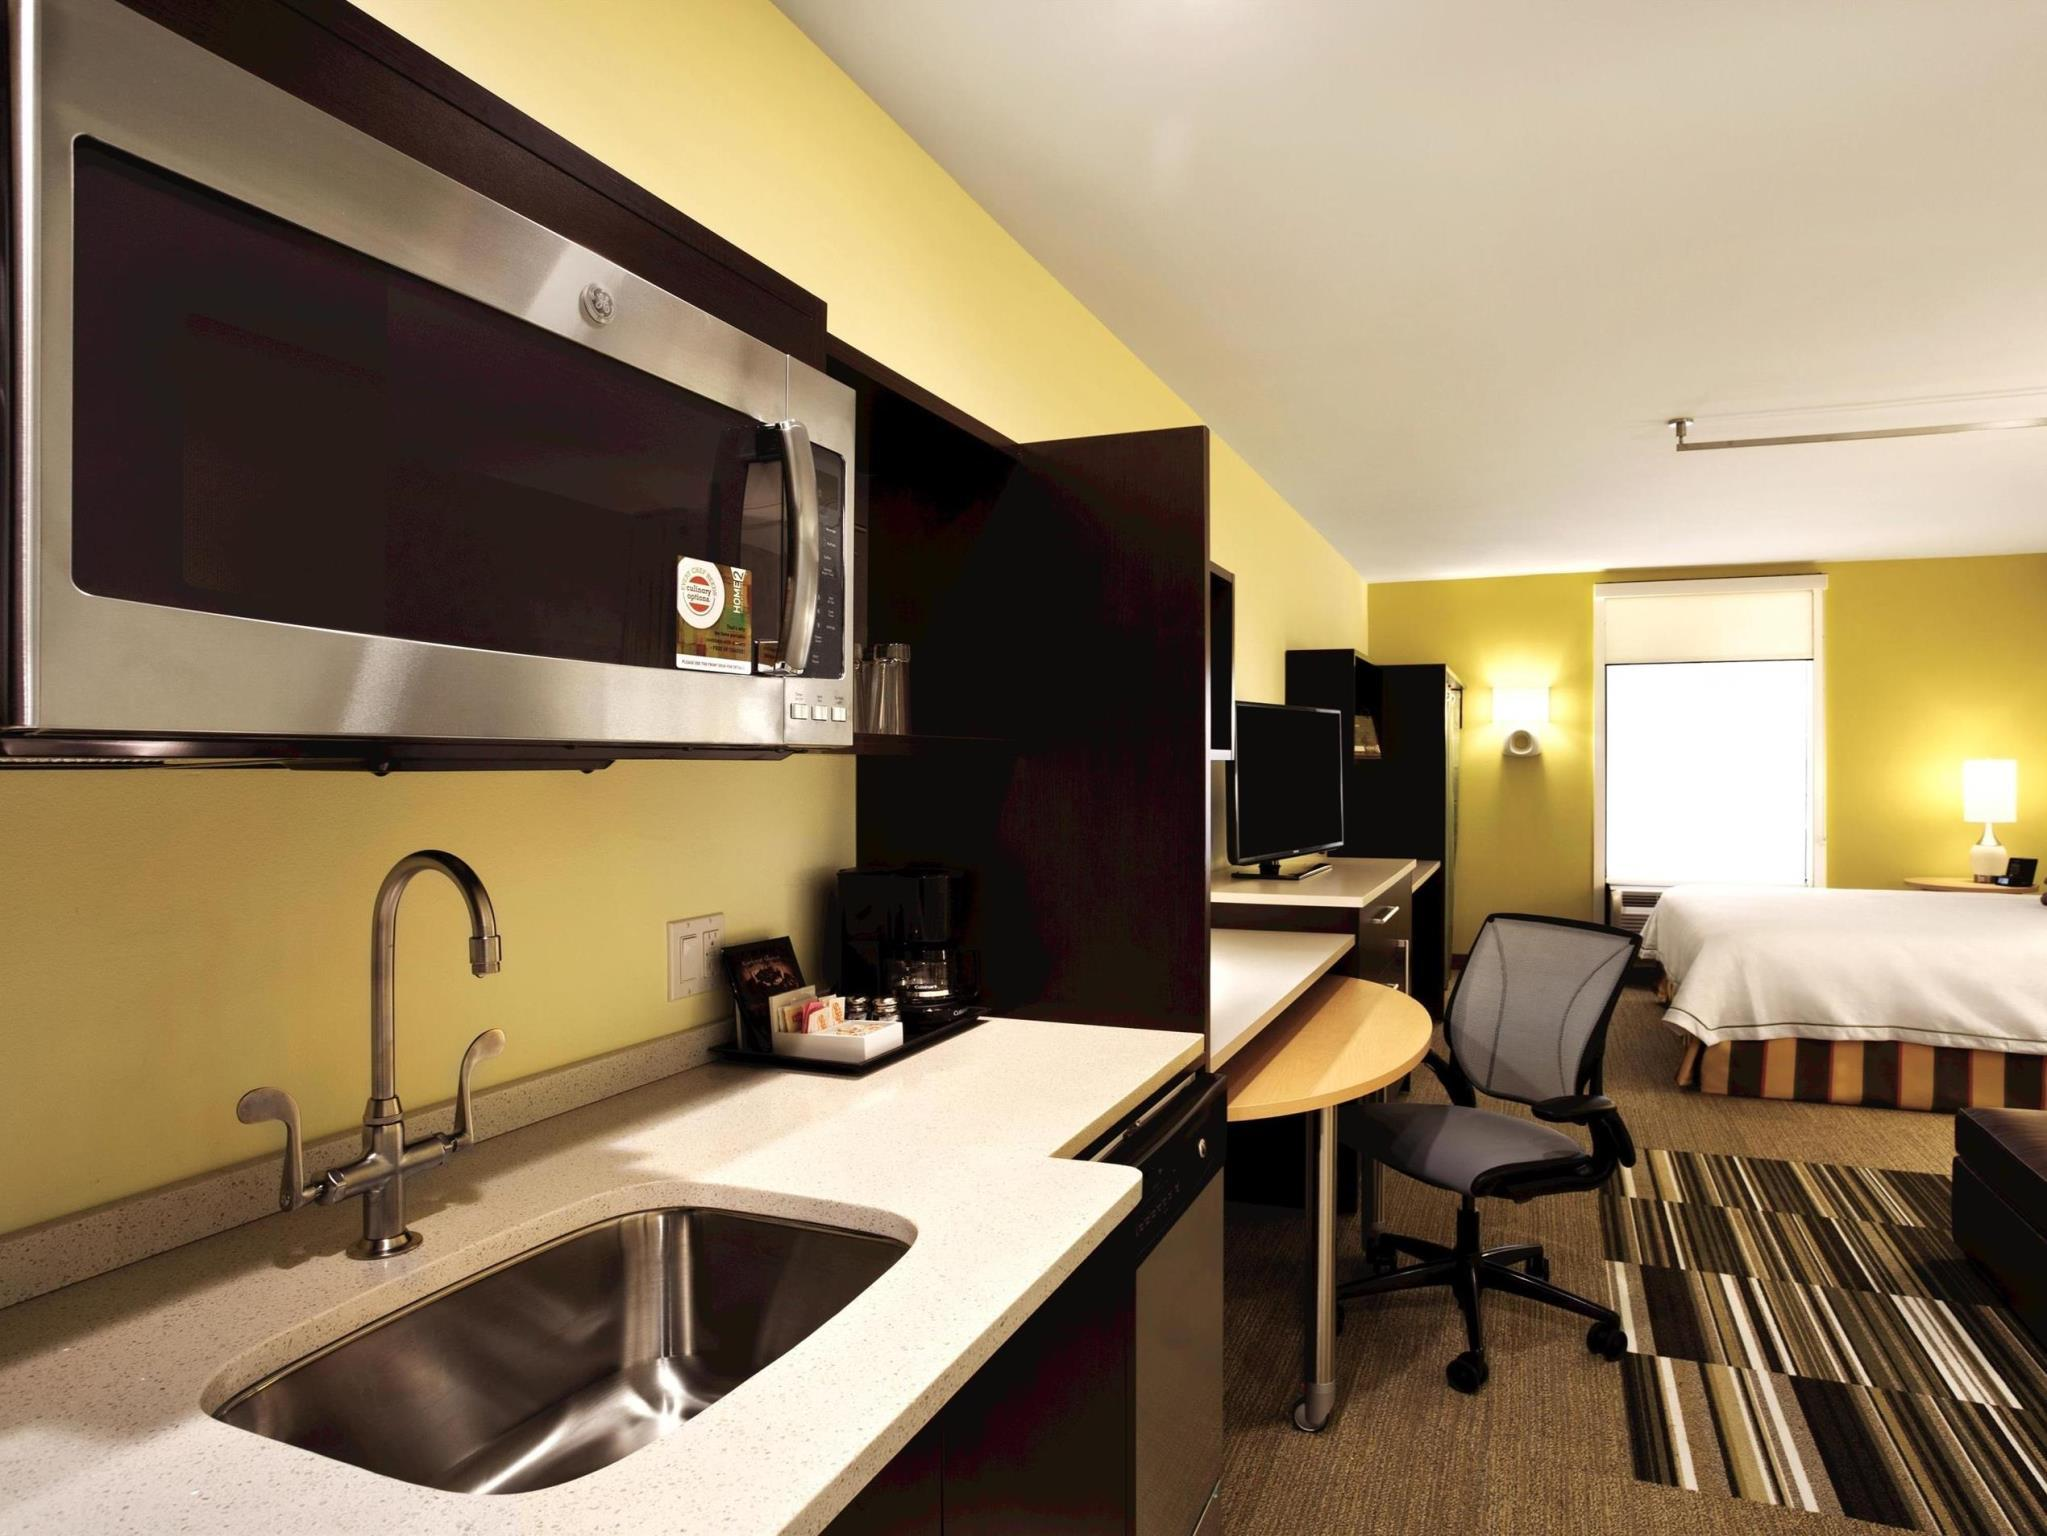 Home2 Suites By Hilton New York Long Island City